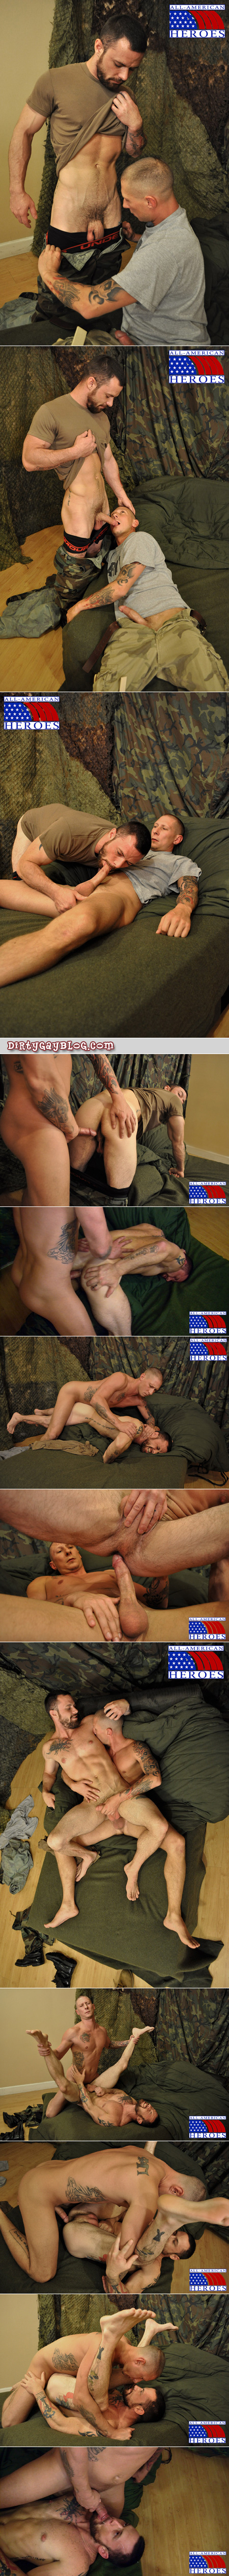 Bearded, veiny sergeant gets fucked in the ass by a private first class with a big dick